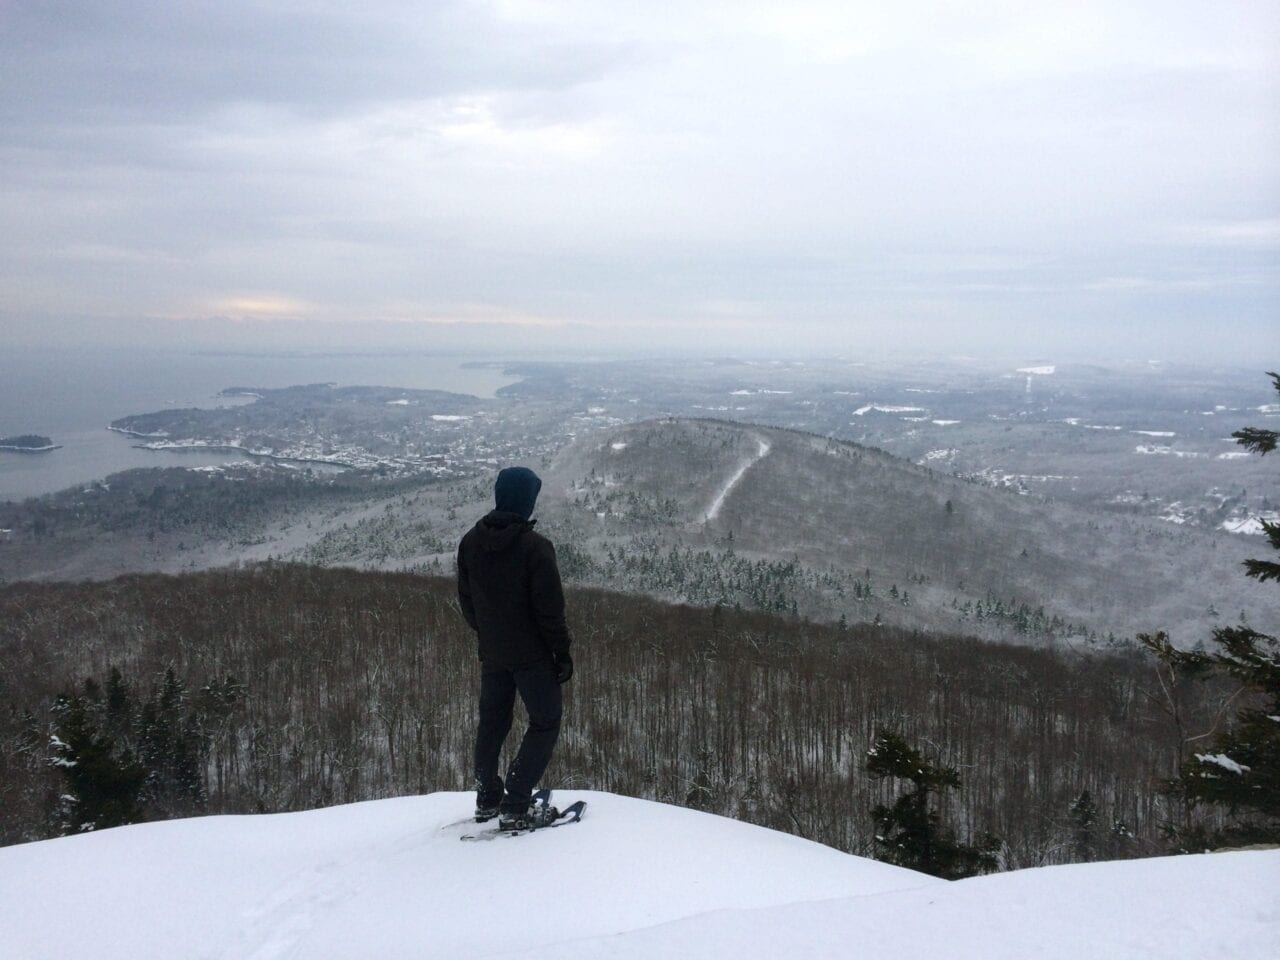 A hiker wearing snowshoes and standing on a snowy ridge looks out onto a foggy valley.